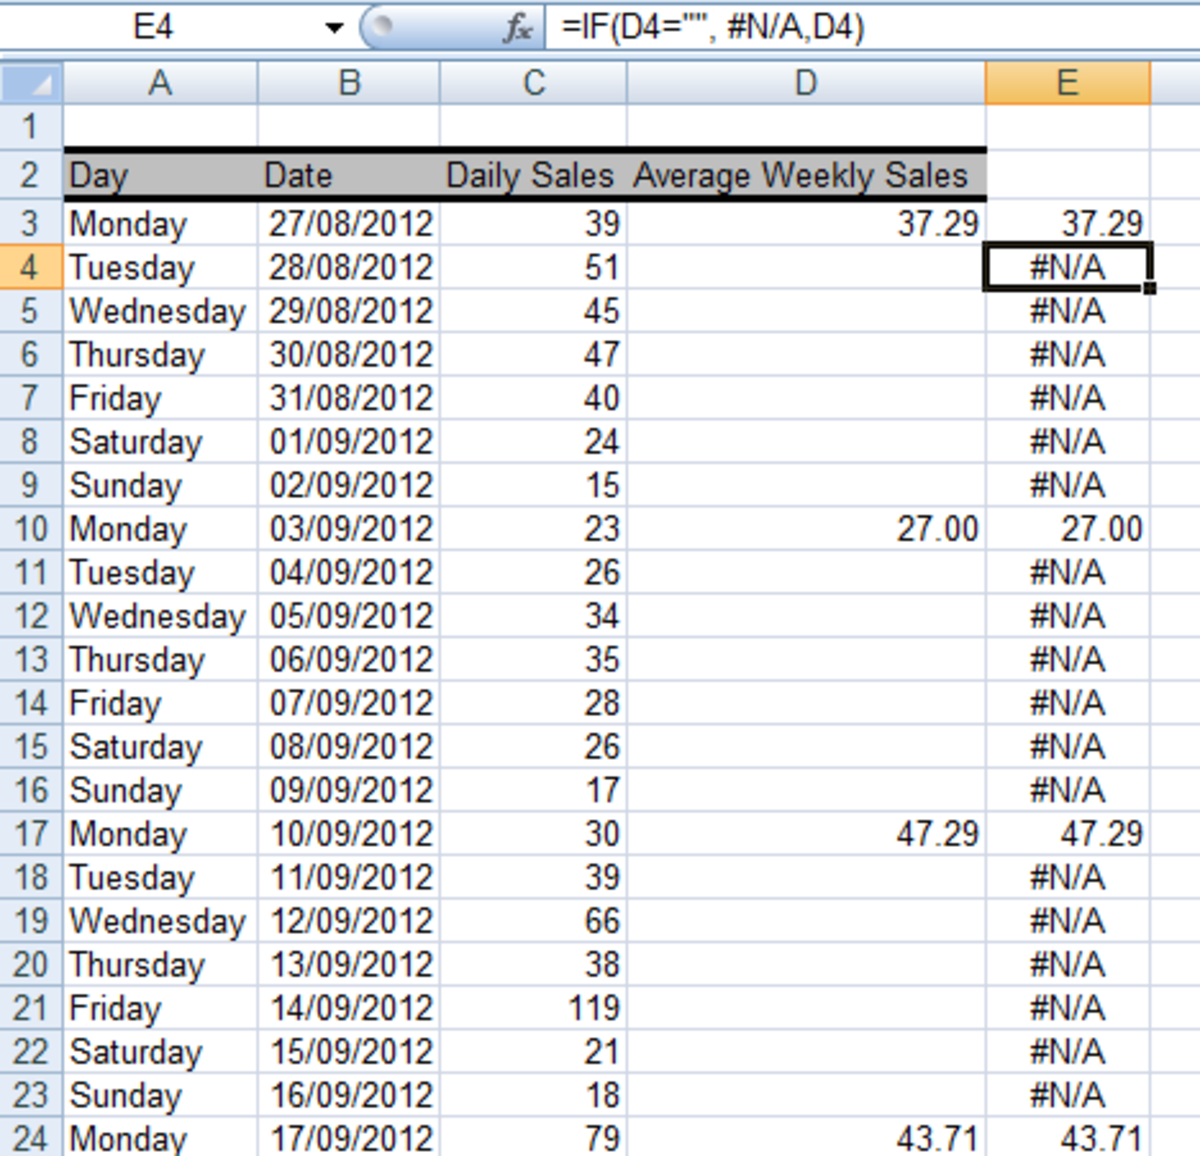 Ediblewildsus  Wonderful How To Get Excel  And  To Ignore Empty Cells In A Chart Or  With Engaging Using The If Function In A Formula To Convert Empty Cells To Na With Beauteous Connect Excel To Mysql Also Loan Repayment Schedule Excel In Addition Vba Programming In Excel And Trend Formula In Excel As Well As Excel Electronic Signature Additionally Select Distinct In Excel From Turbofuturecom With Ediblewildsus  Engaging How To Get Excel  And  To Ignore Empty Cells In A Chart Or  With Beauteous Using The If Function In A Formula To Convert Empty Cells To Na And Wonderful Connect Excel To Mysql Also Loan Repayment Schedule Excel In Addition Vba Programming In Excel From Turbofuturecom